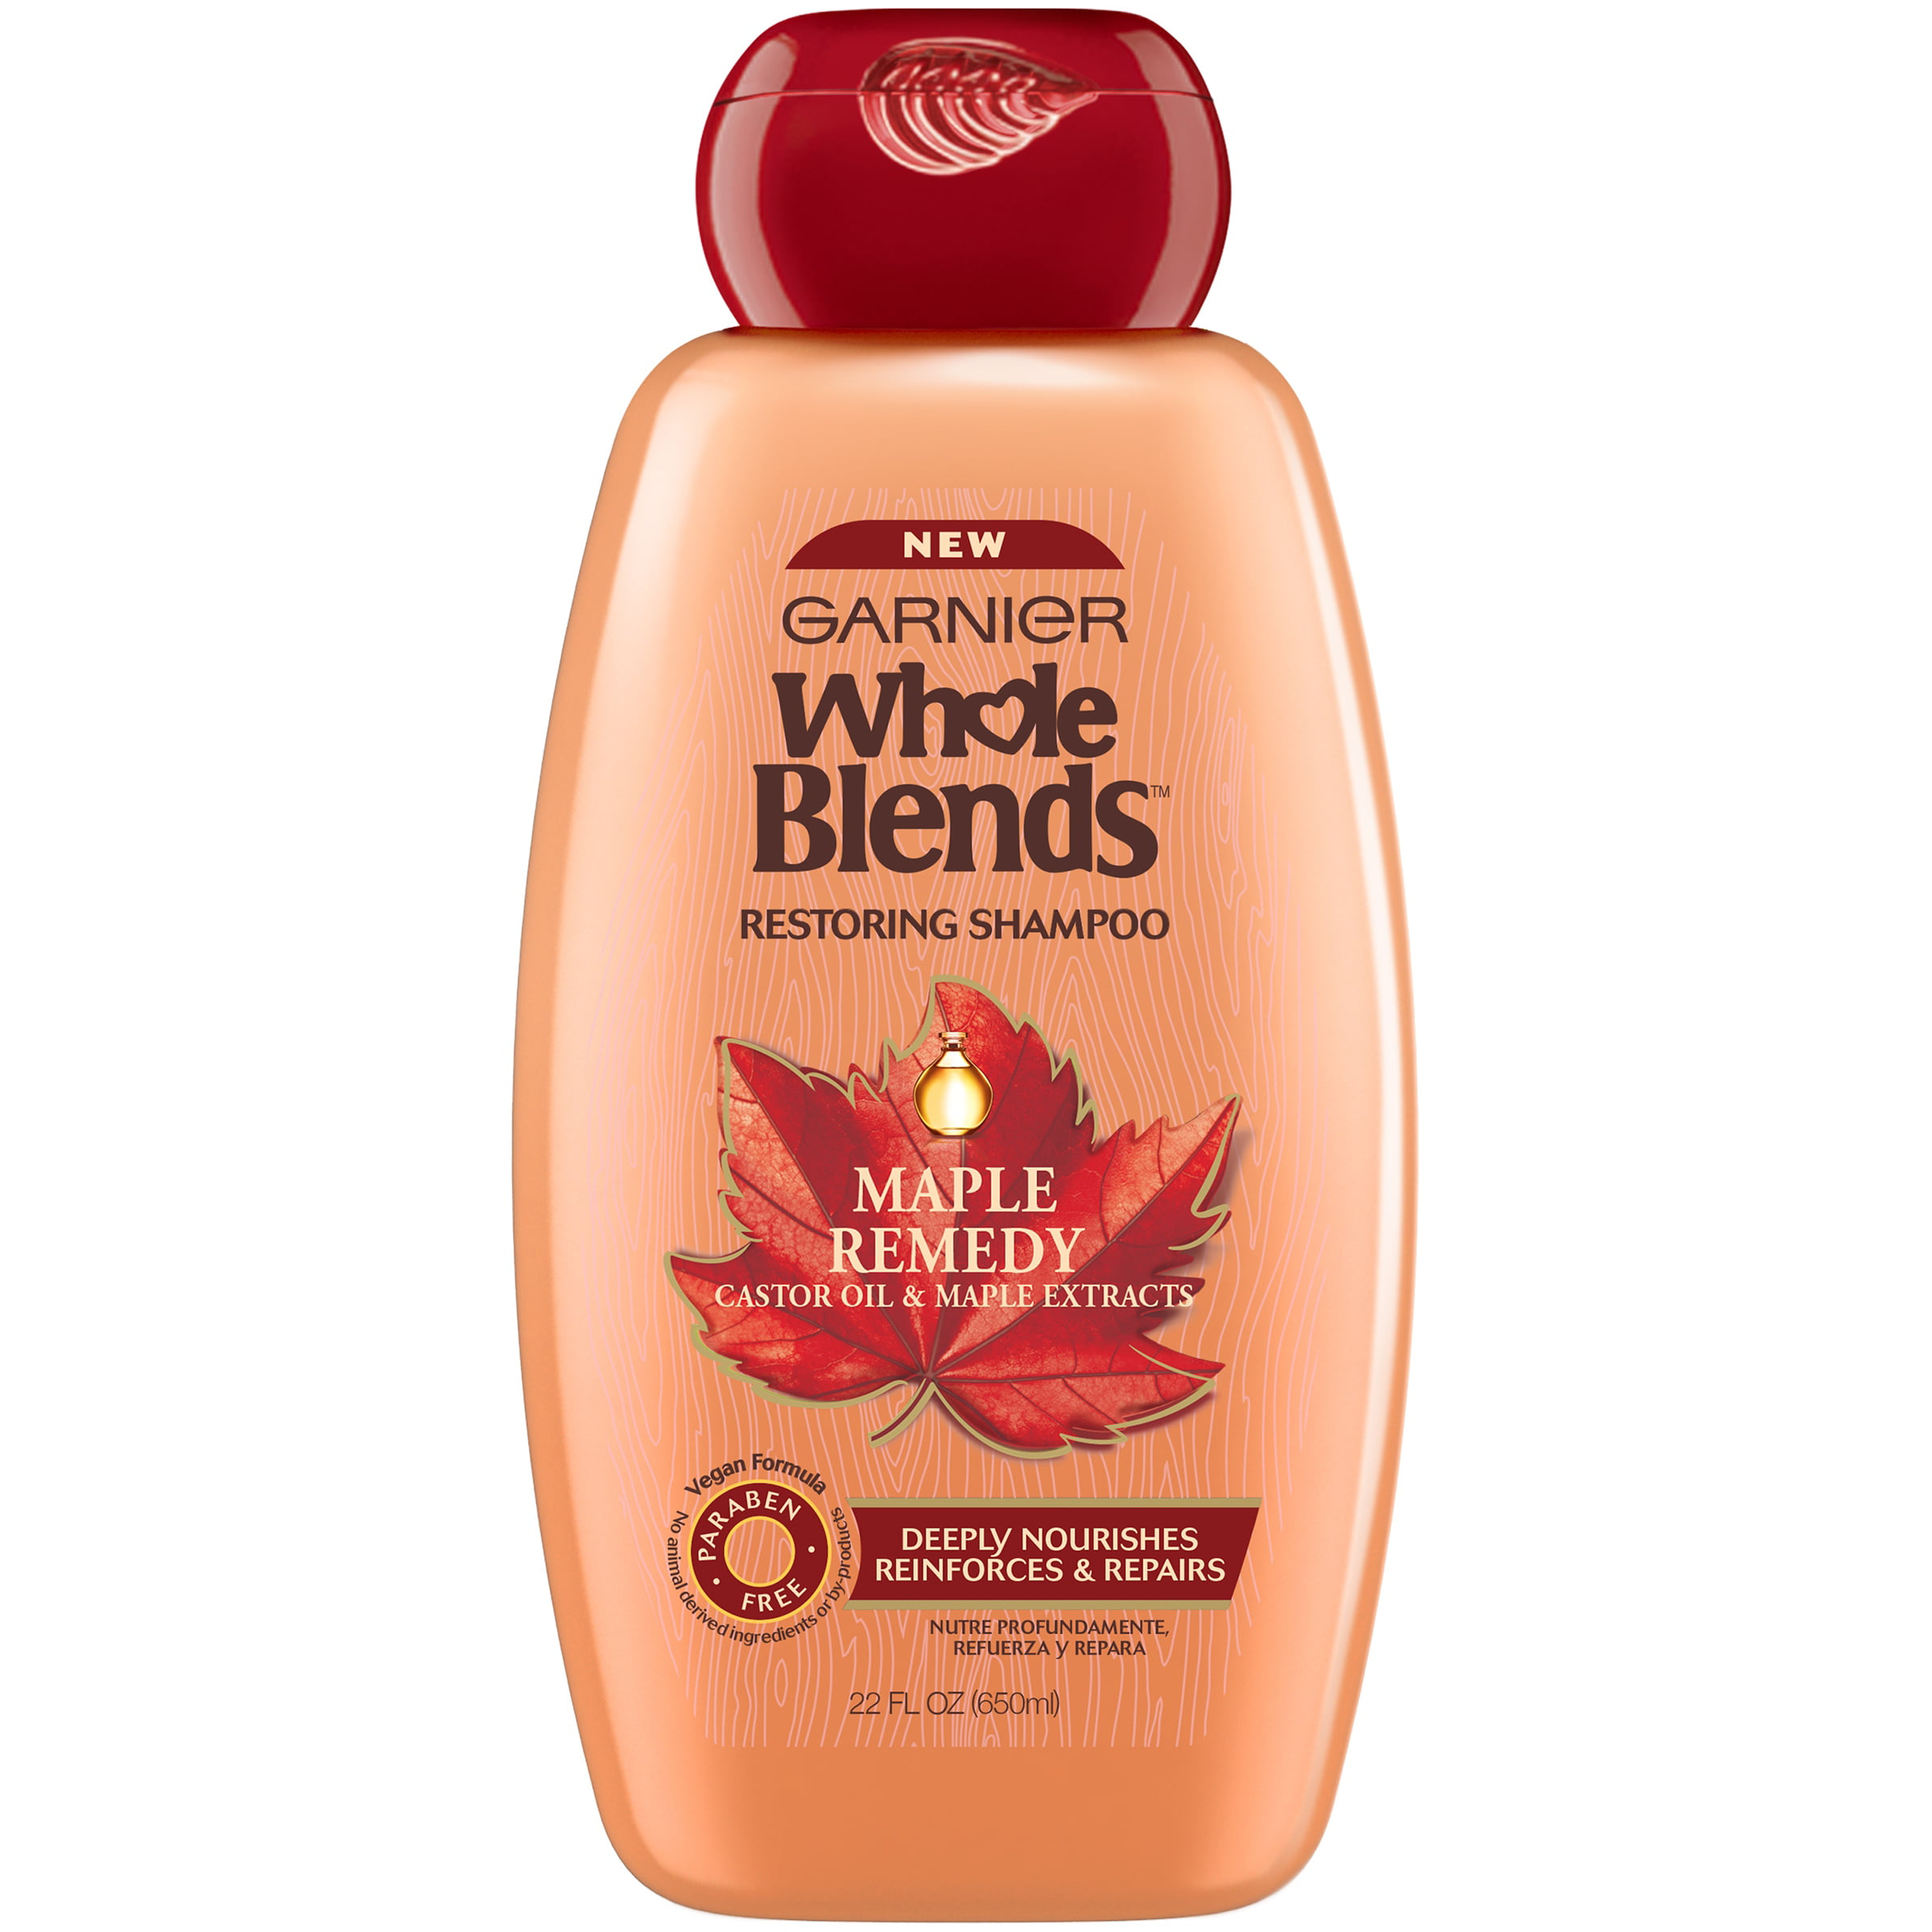 Garnier Whole Blends Restoring Shampoo Maple Remedy, For Dry, Damaged Hair, 22 fl. oz.